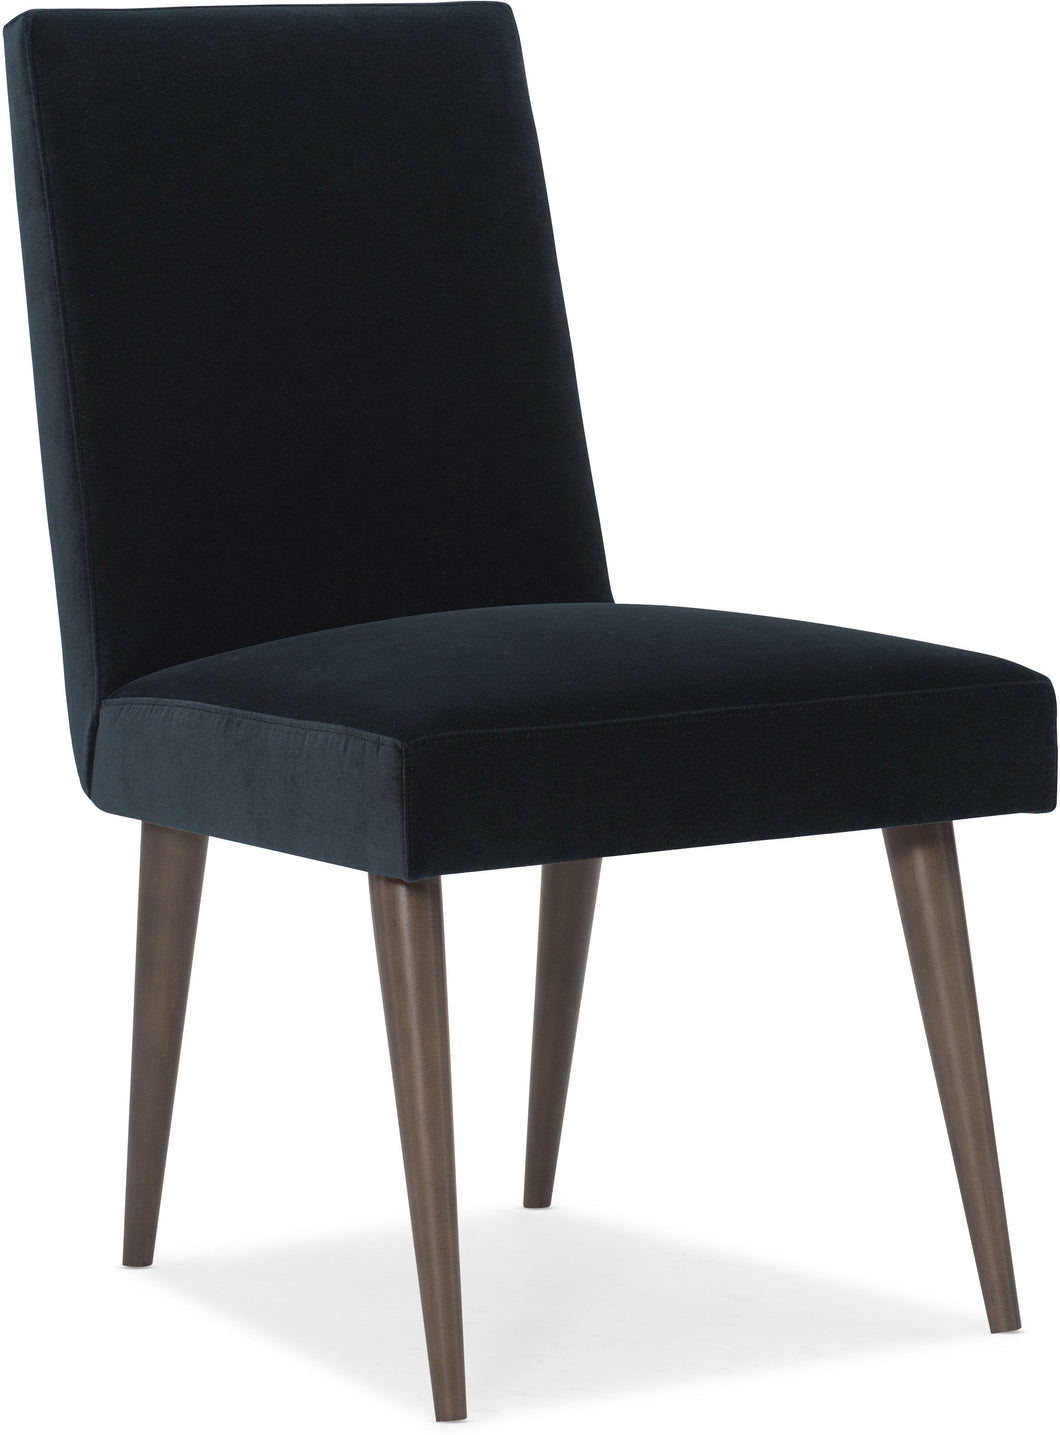 MARQ Dining Room Jordan Dining Chair - Dream art Gallery